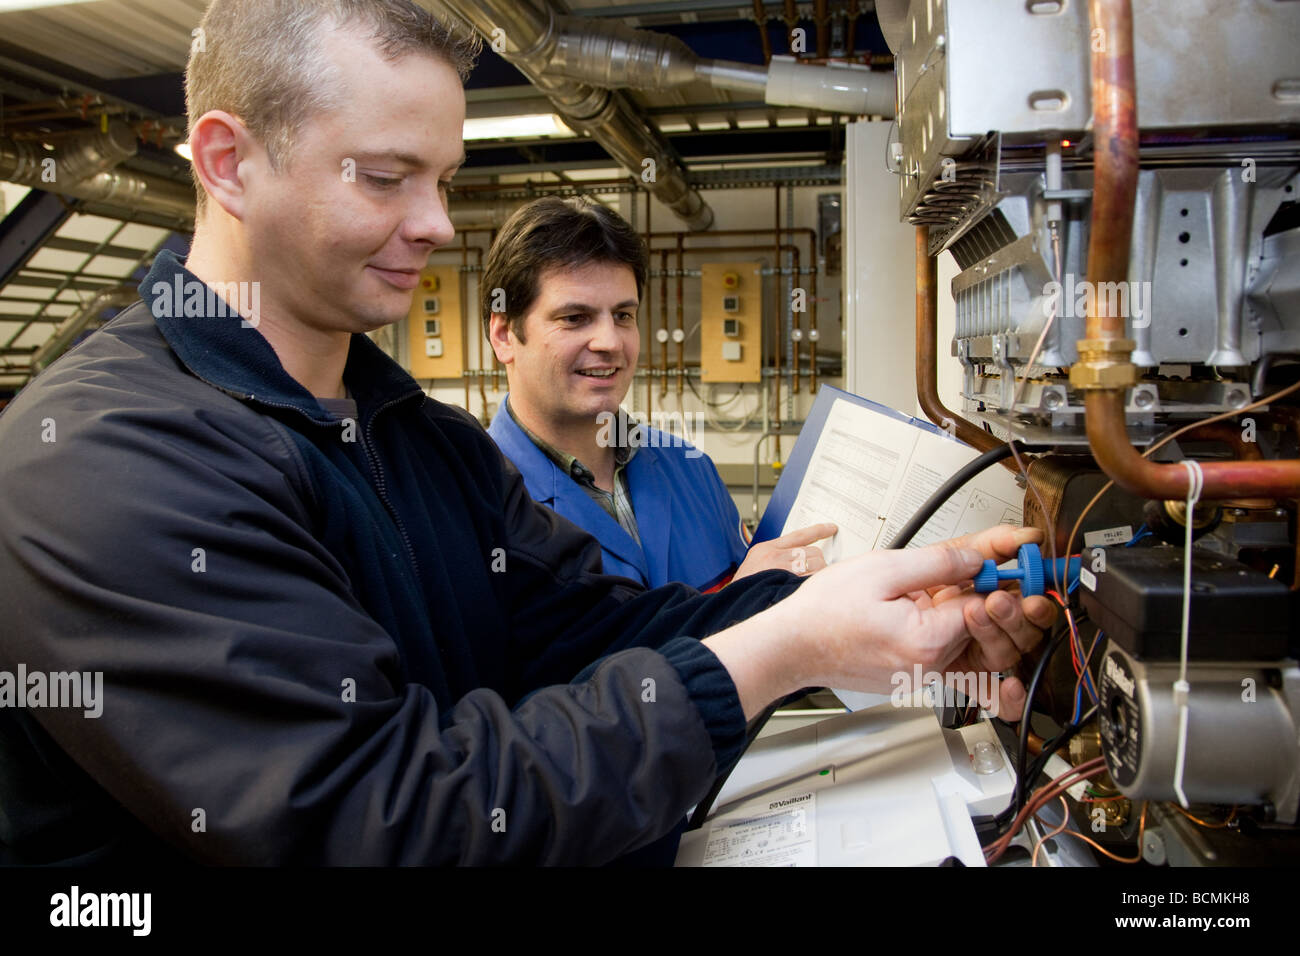 Training for heating ventilation and air conditioning in the school for master craftsmen in the Chamber of Trade - Stock Image